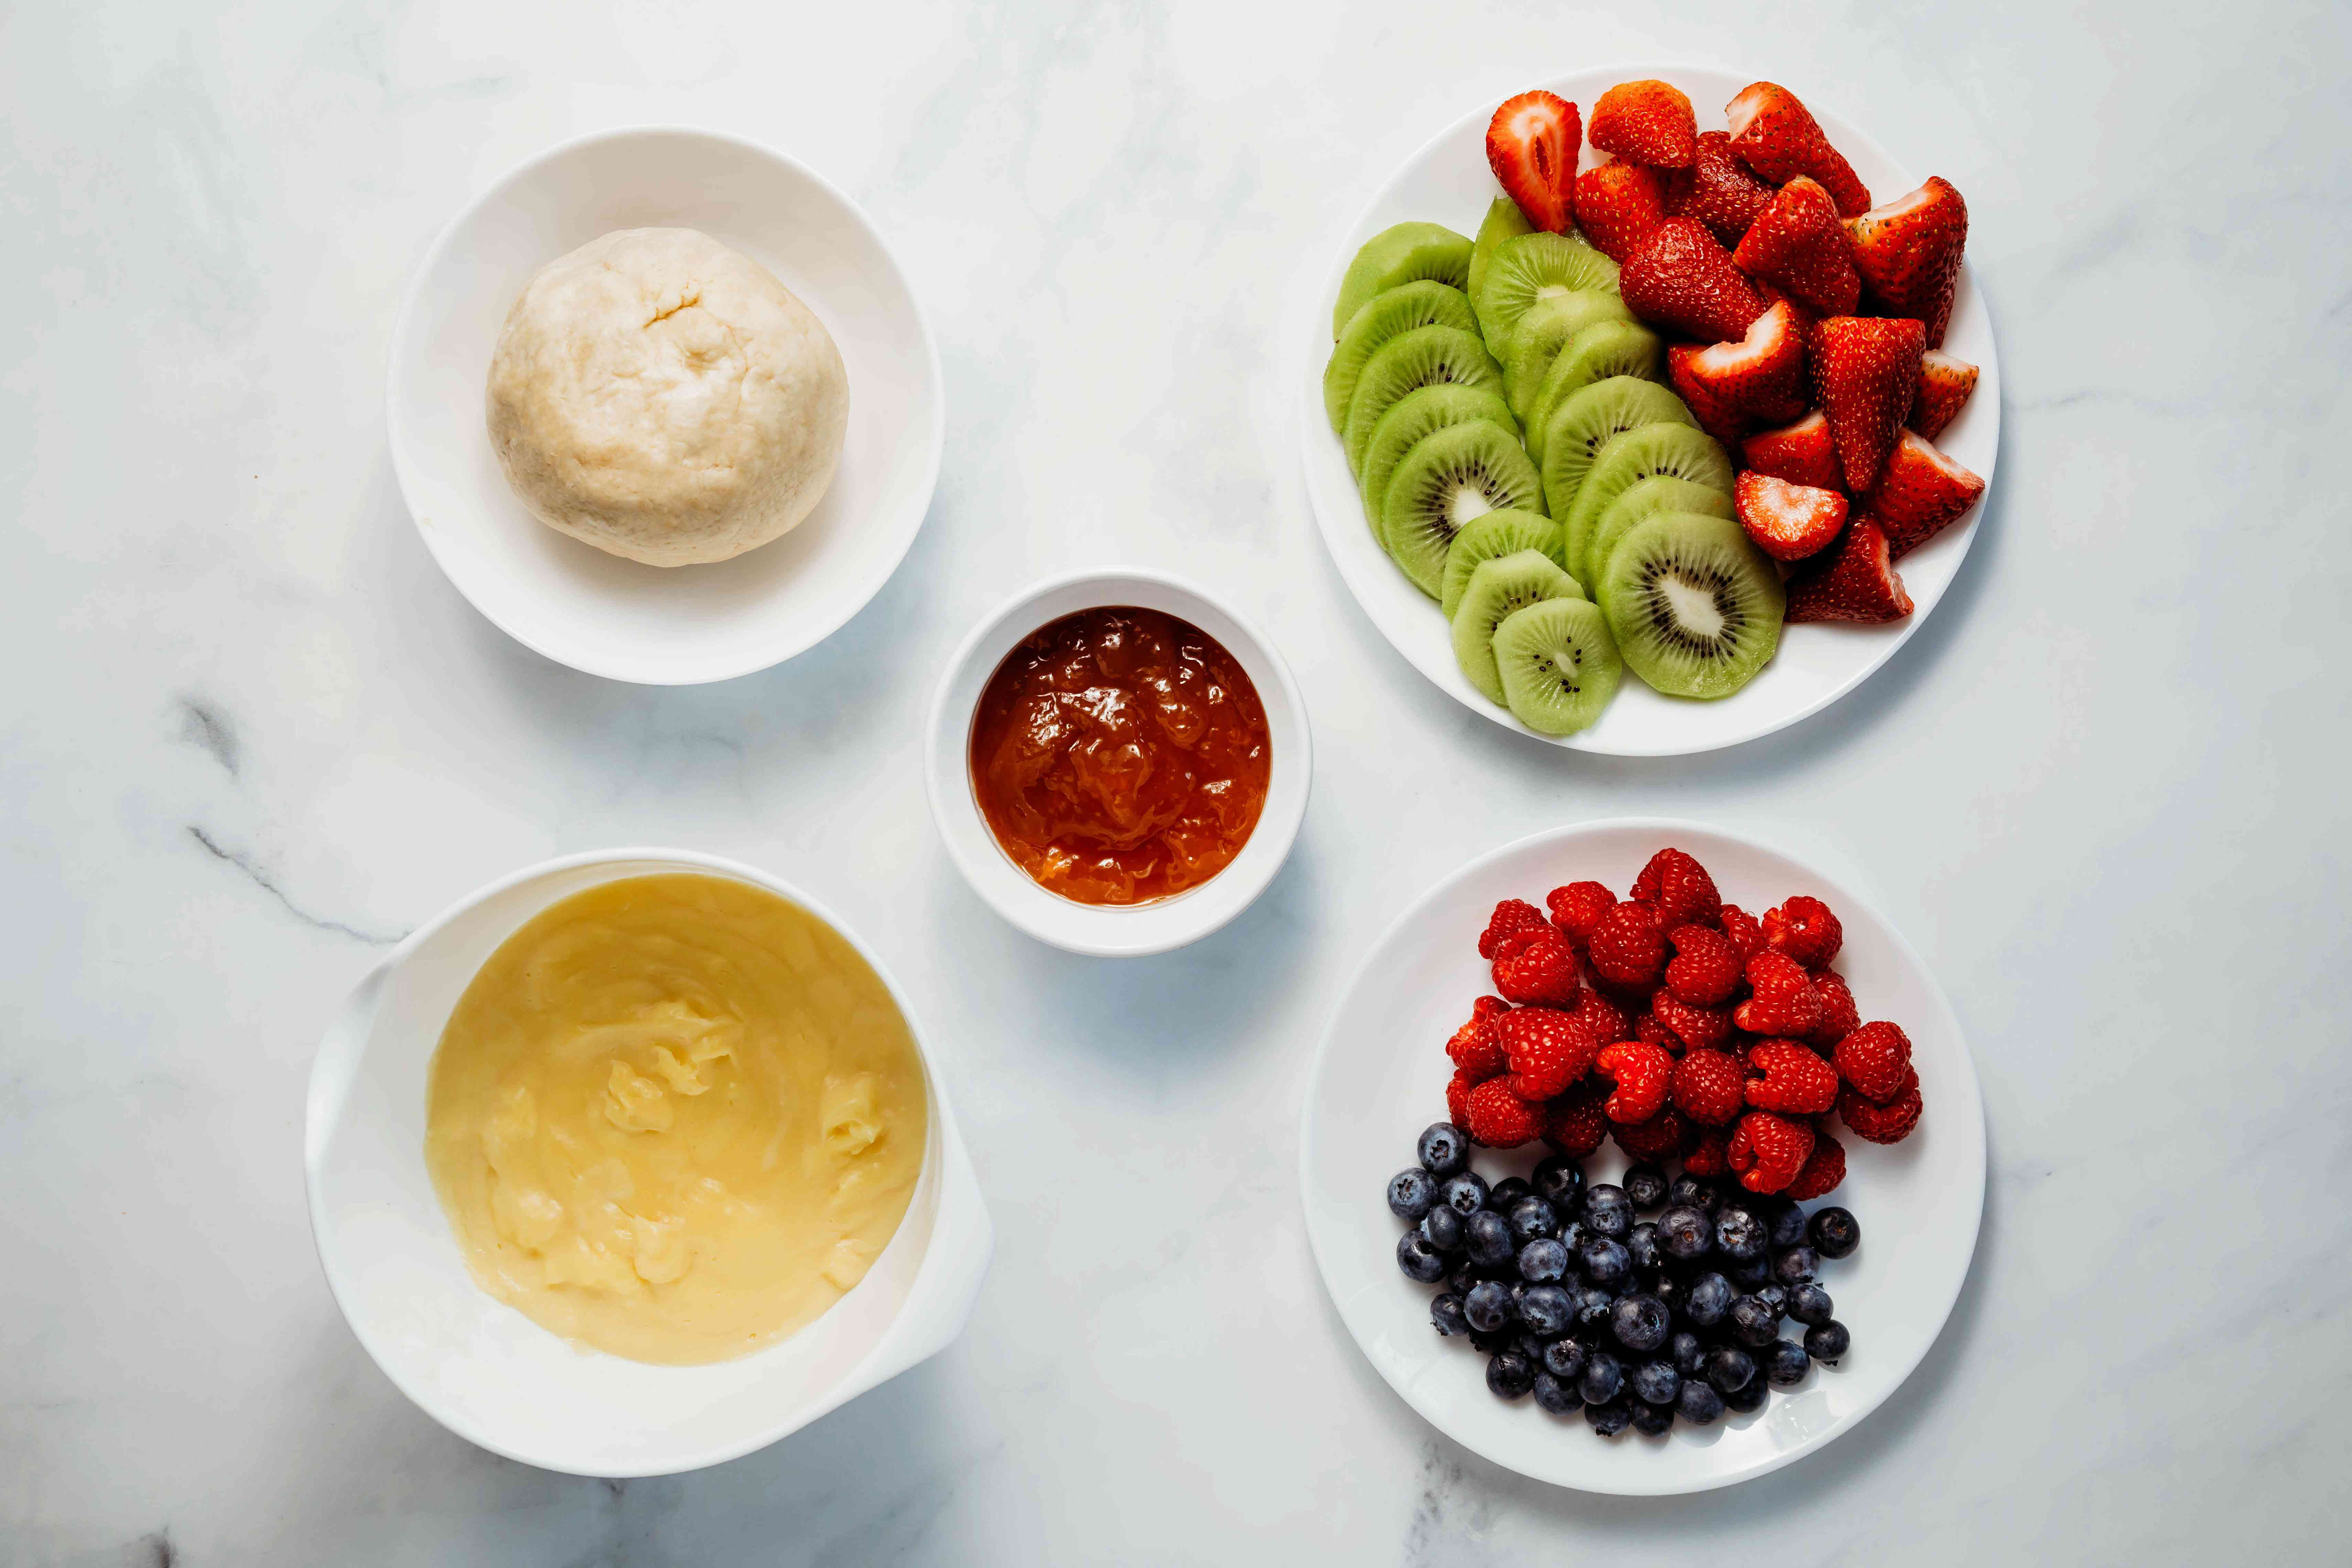 Fruit Tart With Pastry Cream Filling ingredients